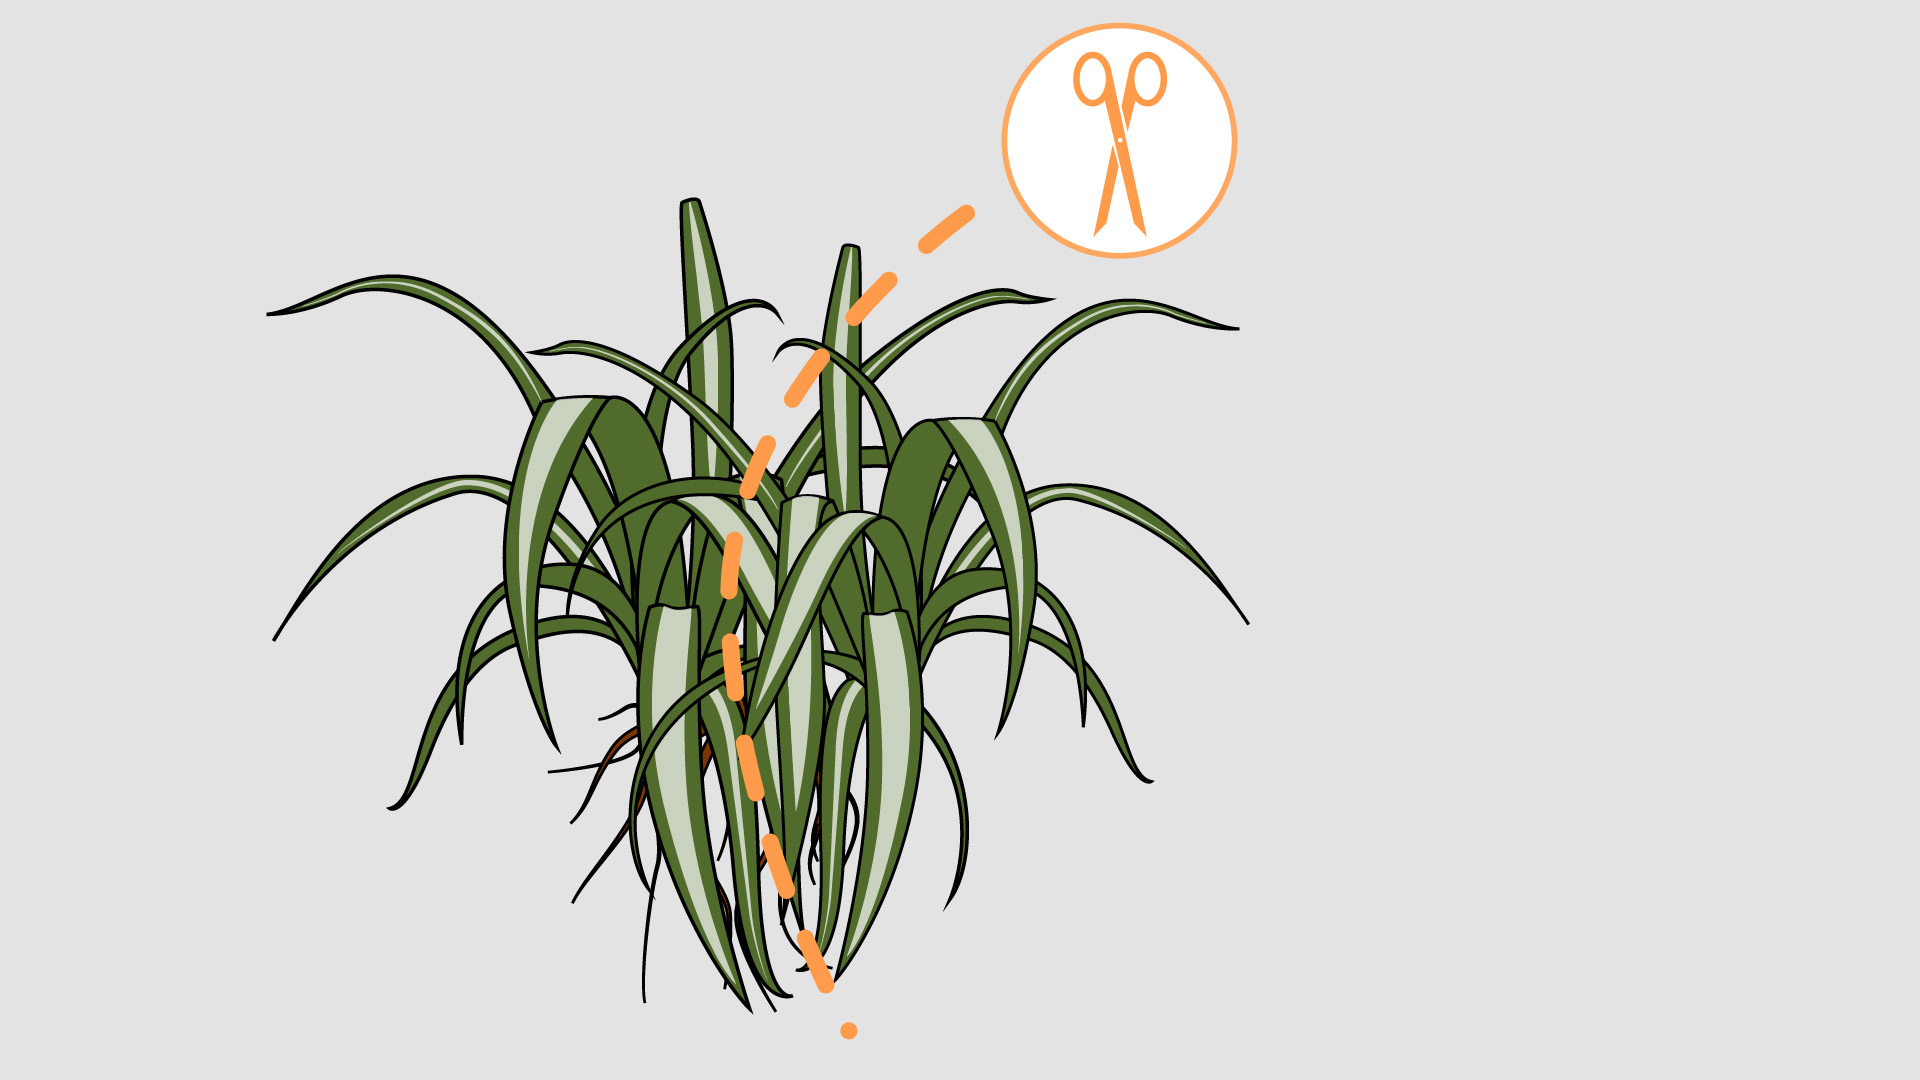 Sophisticated How To Care A Spider Steps Wikihow Spider Plant No Babies Spider Plant Babies Turning Brown houzz-03 Spider Plant Babies